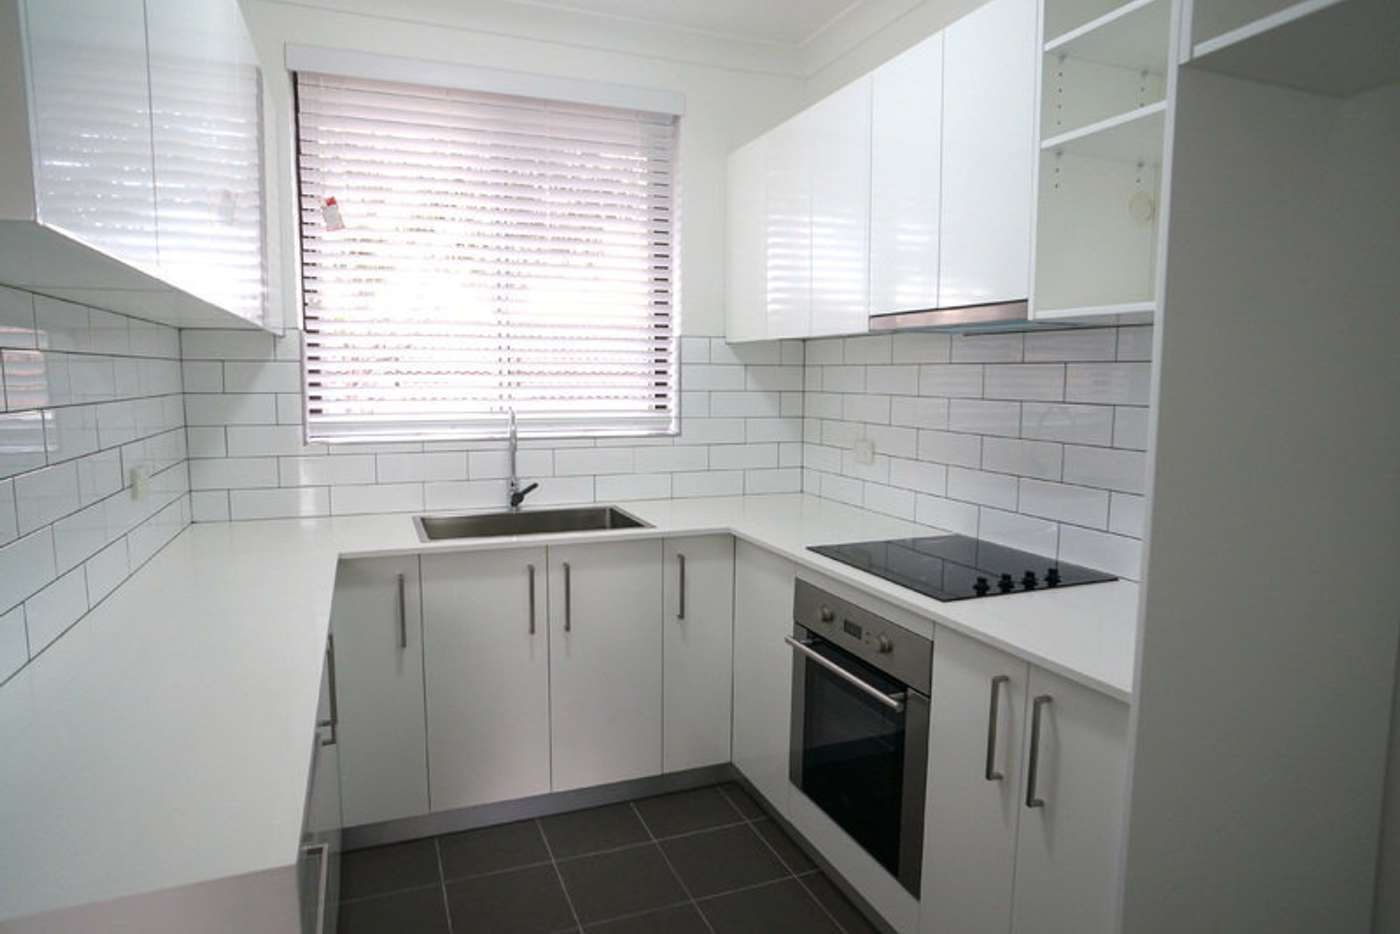 Main view of Homely apartment listing, 24/166 Oberon Street, Coogee NSW 2034